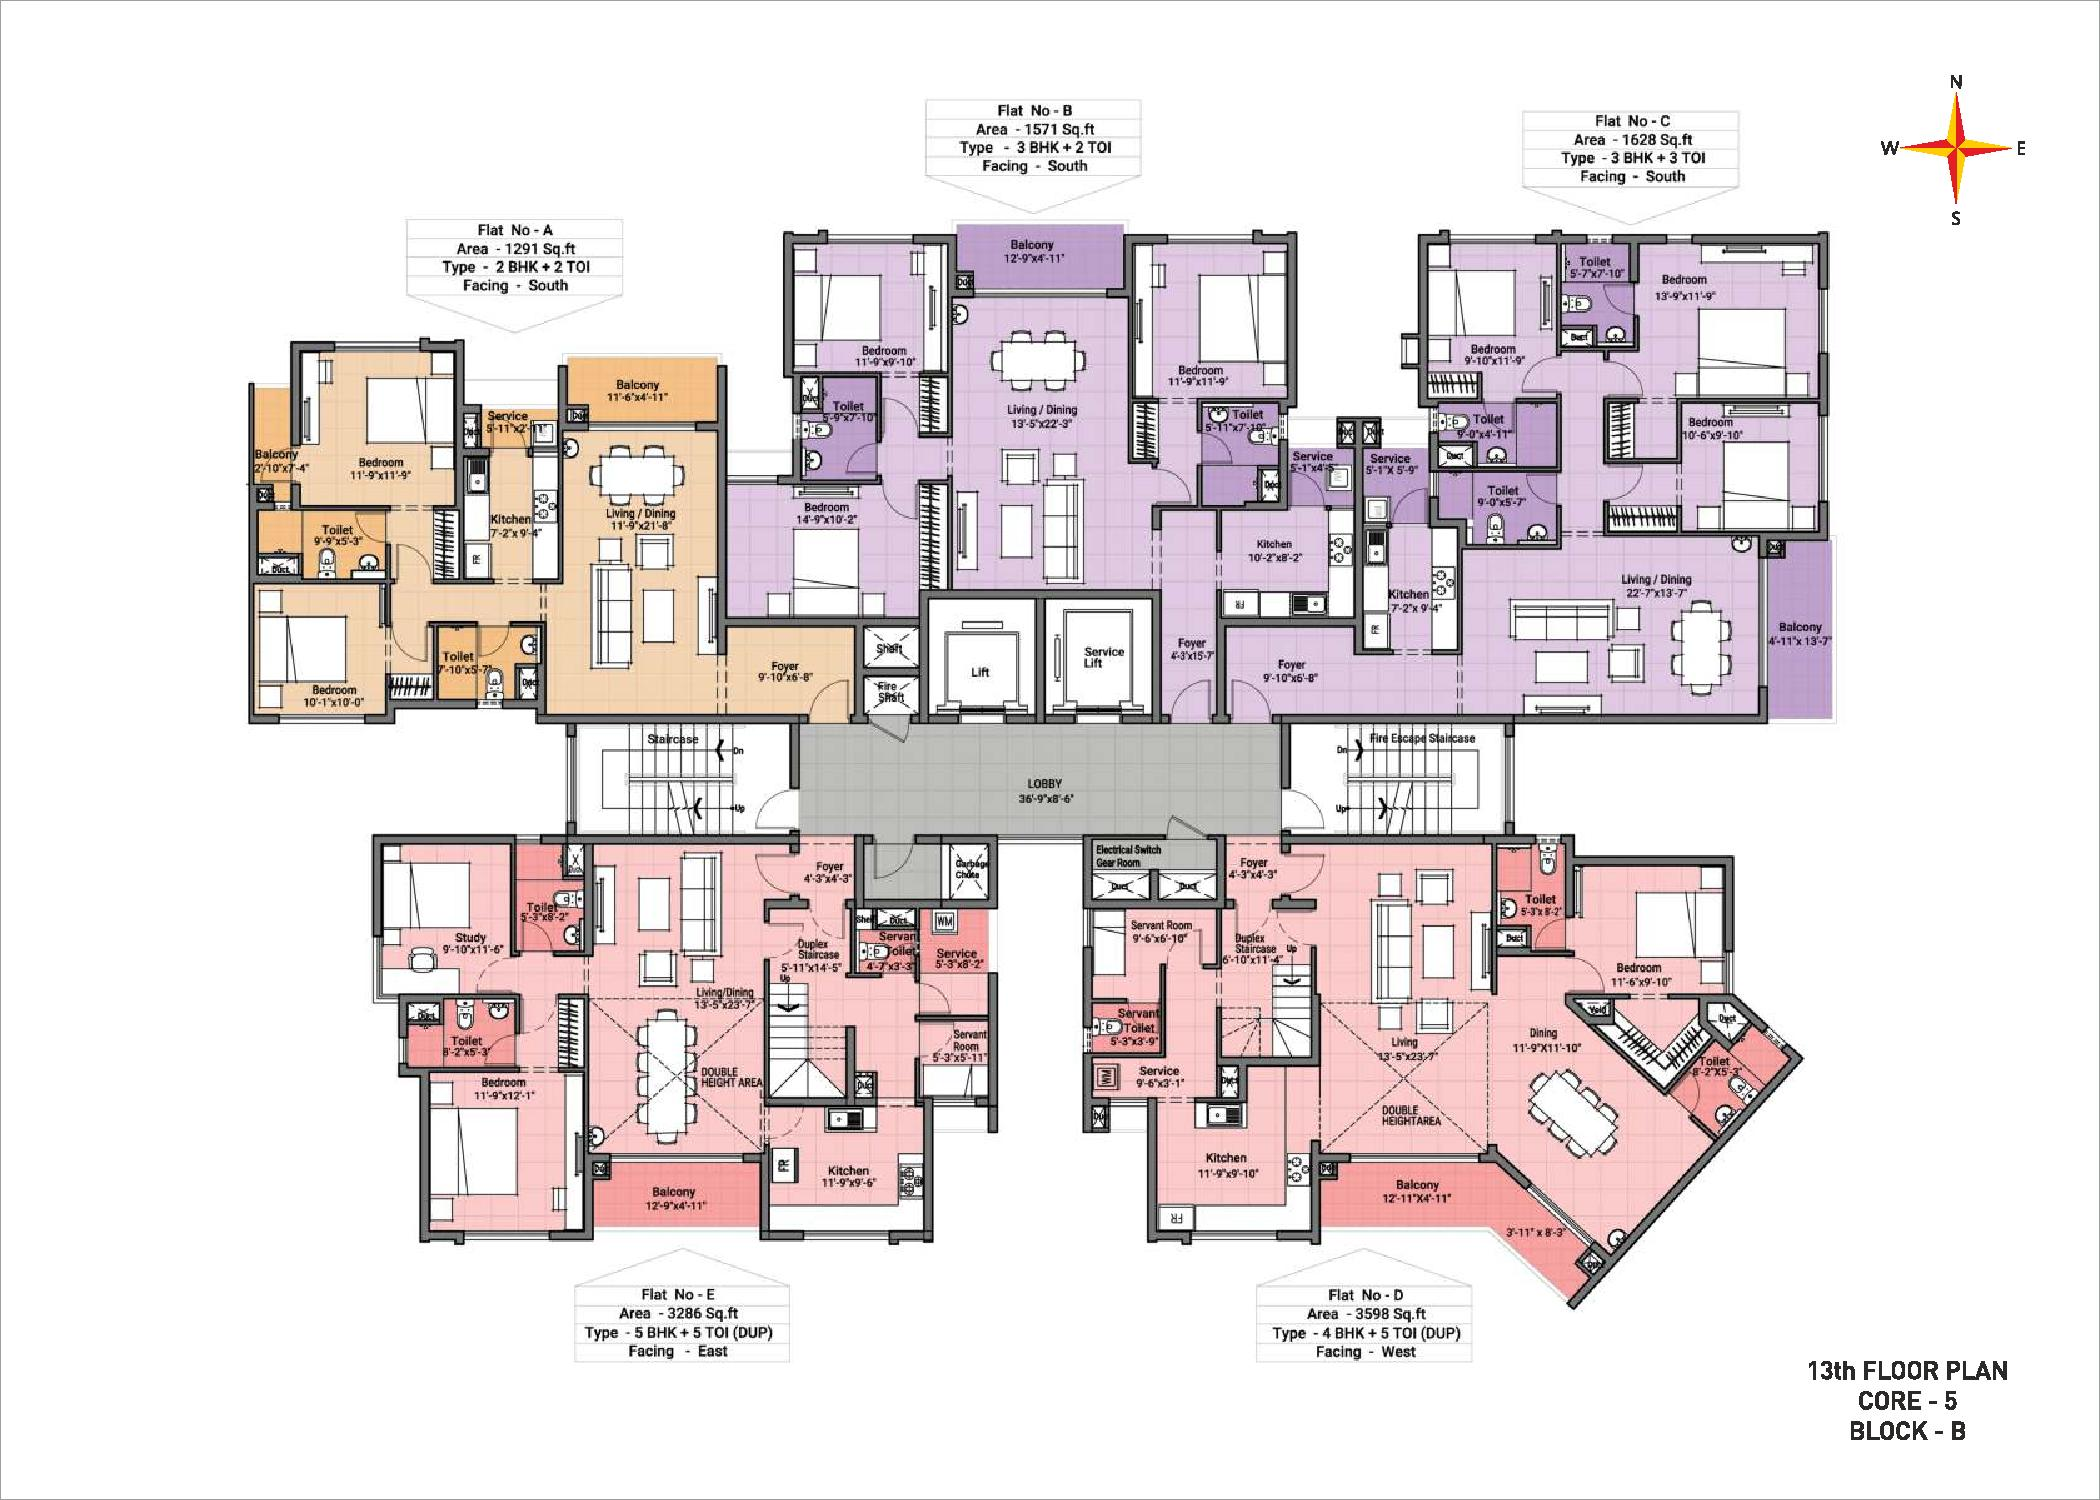 13th Floor plan Block B Core 5